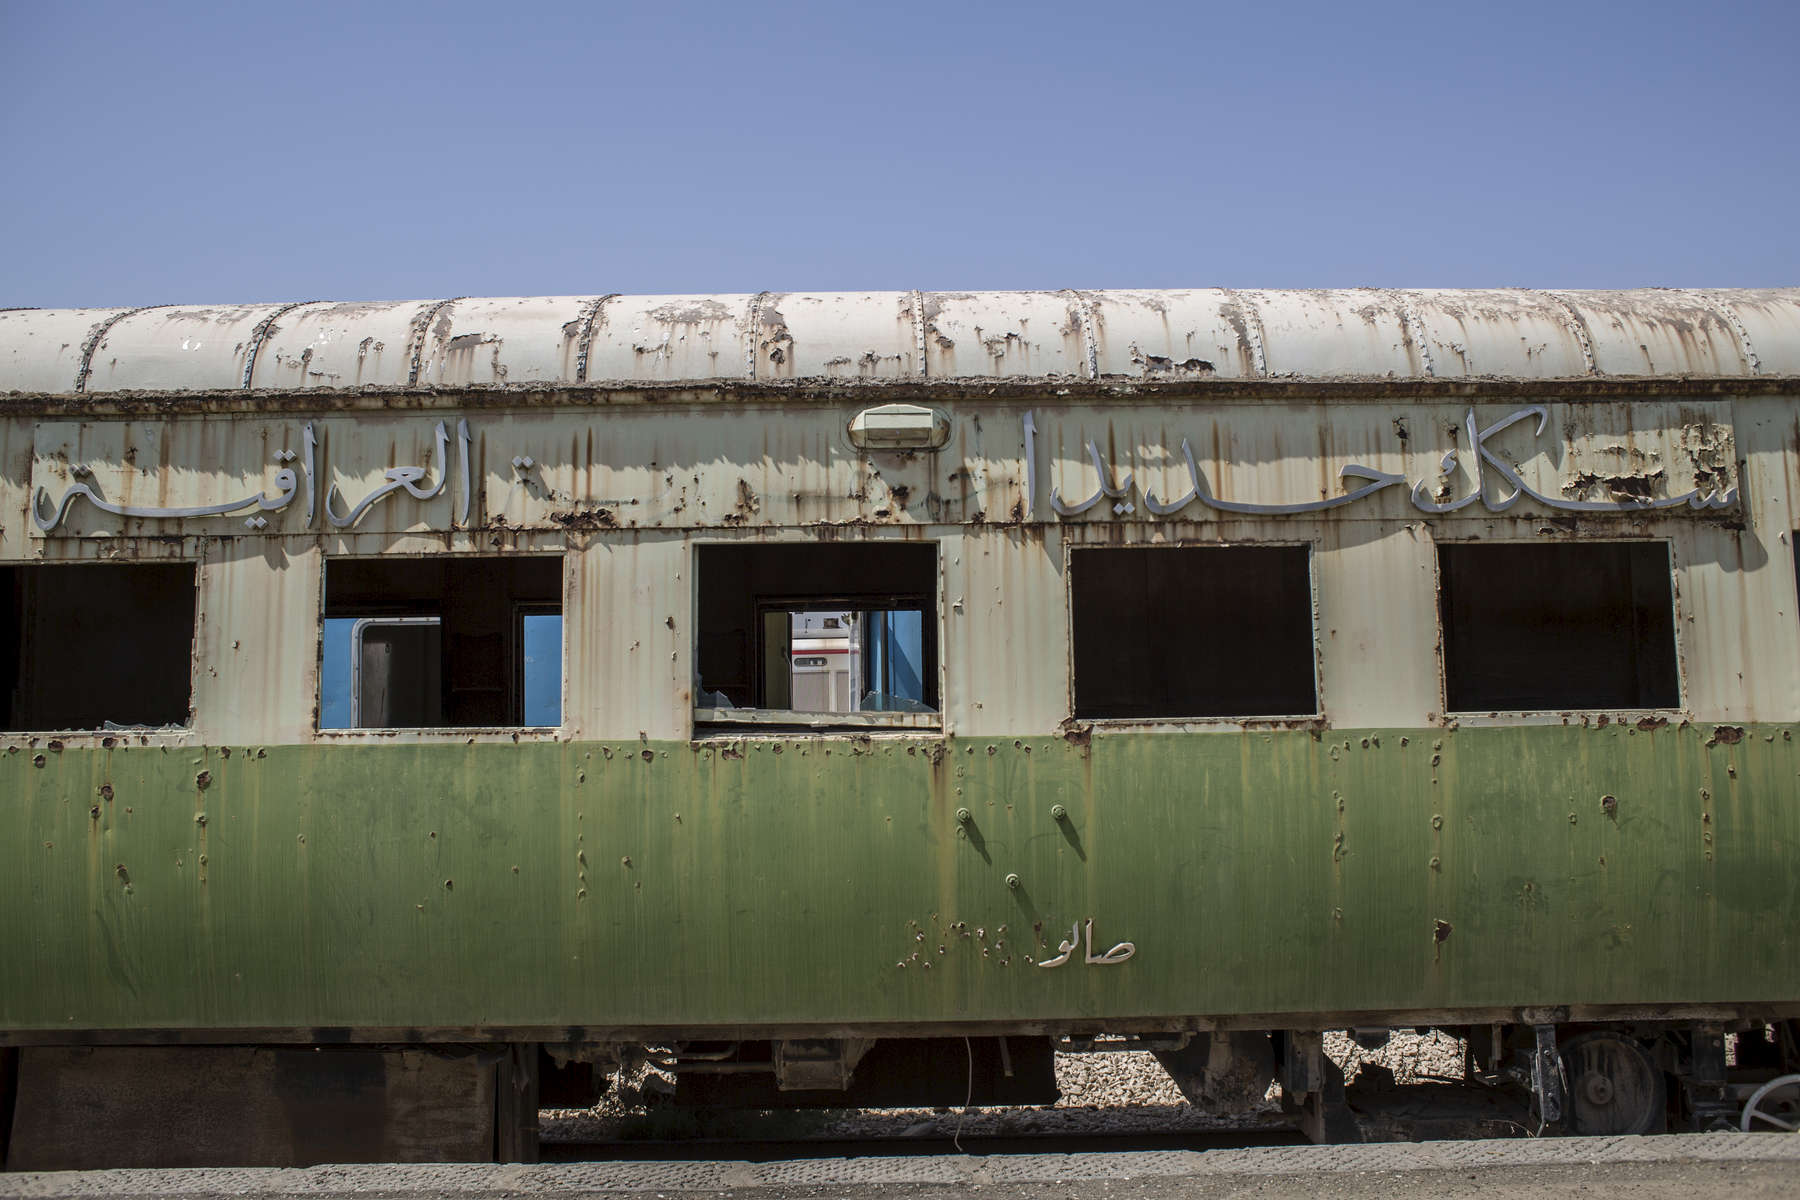 11/08/2016 -- Baghdad, Iraq -- Part of Saddam Hussein's carriage purchased from France in 1981, now left derelict, having suffered the woes of looting post-2003 US-led invasion of Iraq.